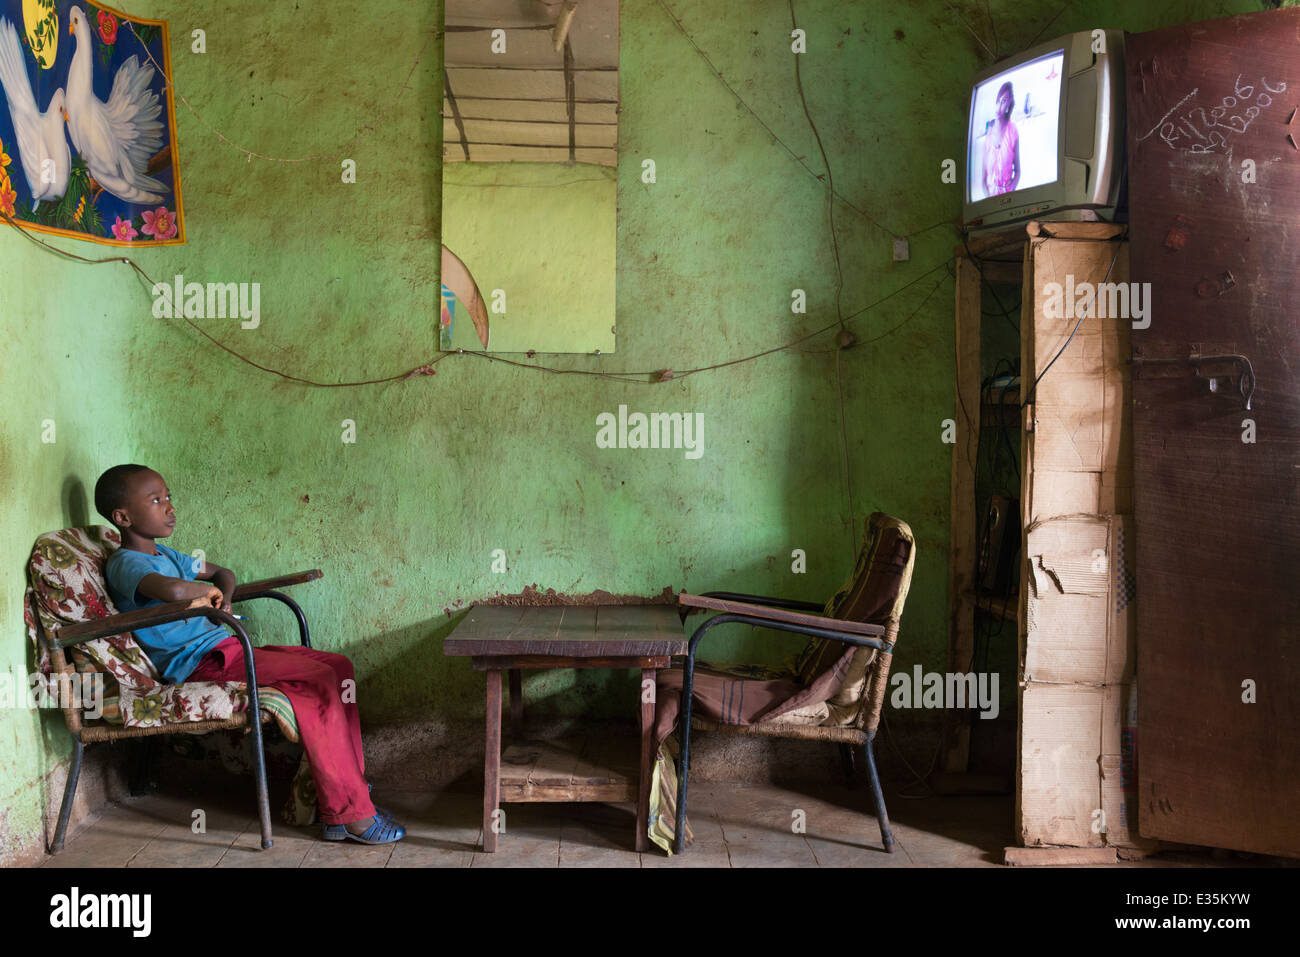 Boy watching TV. Afaf. Zege peninsula. Lake Tana. Northern Ethiopia. - Stock Image